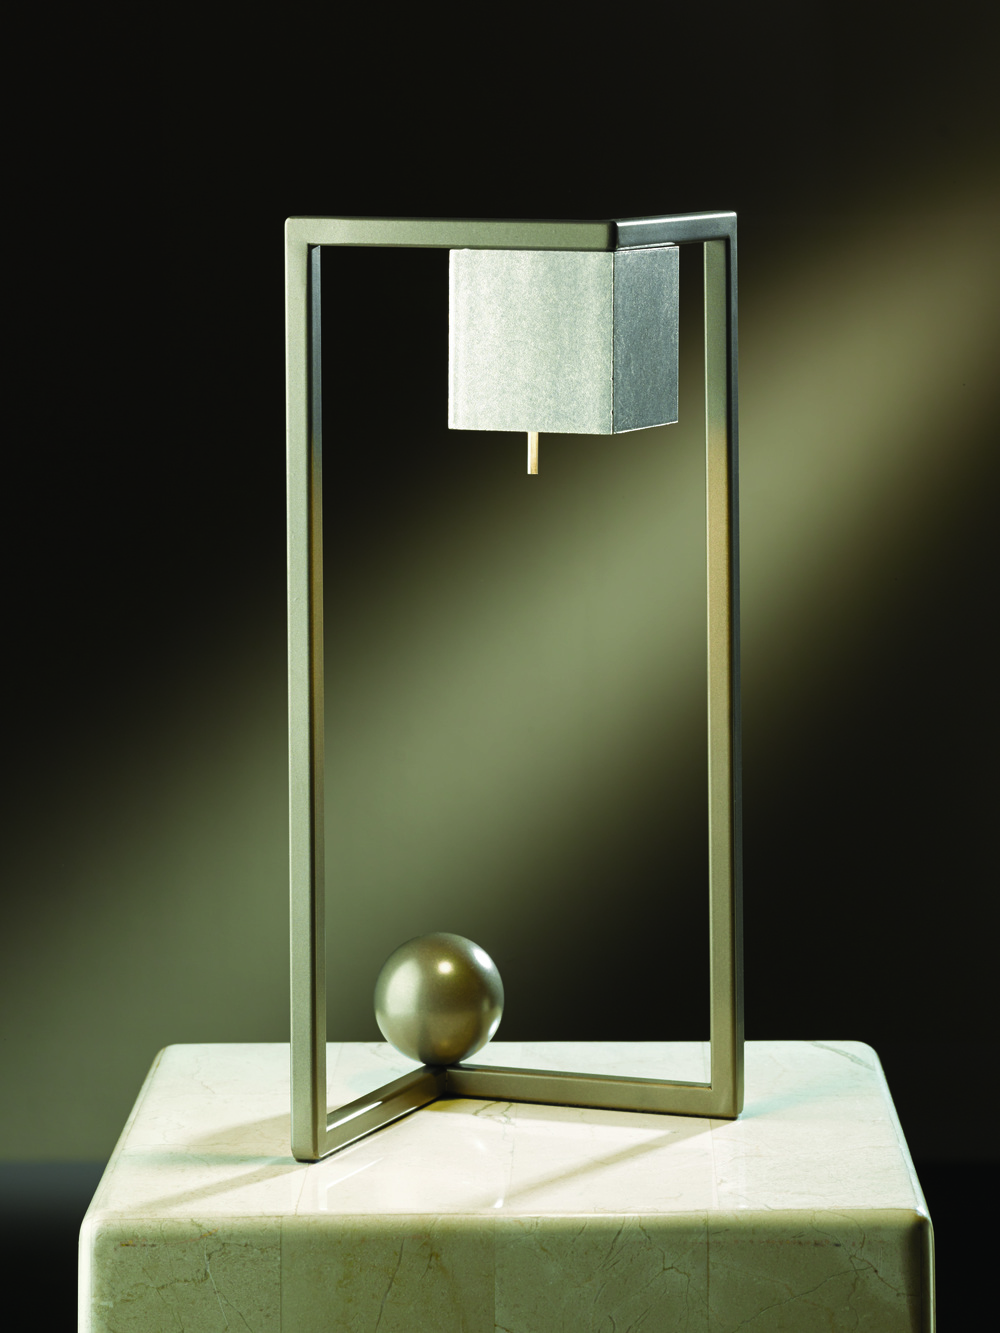 Balance Portable Lamps David Kitts, ASFD; David Martin, ASFD; Zach Pyle, ASFD Hubbardton Forge